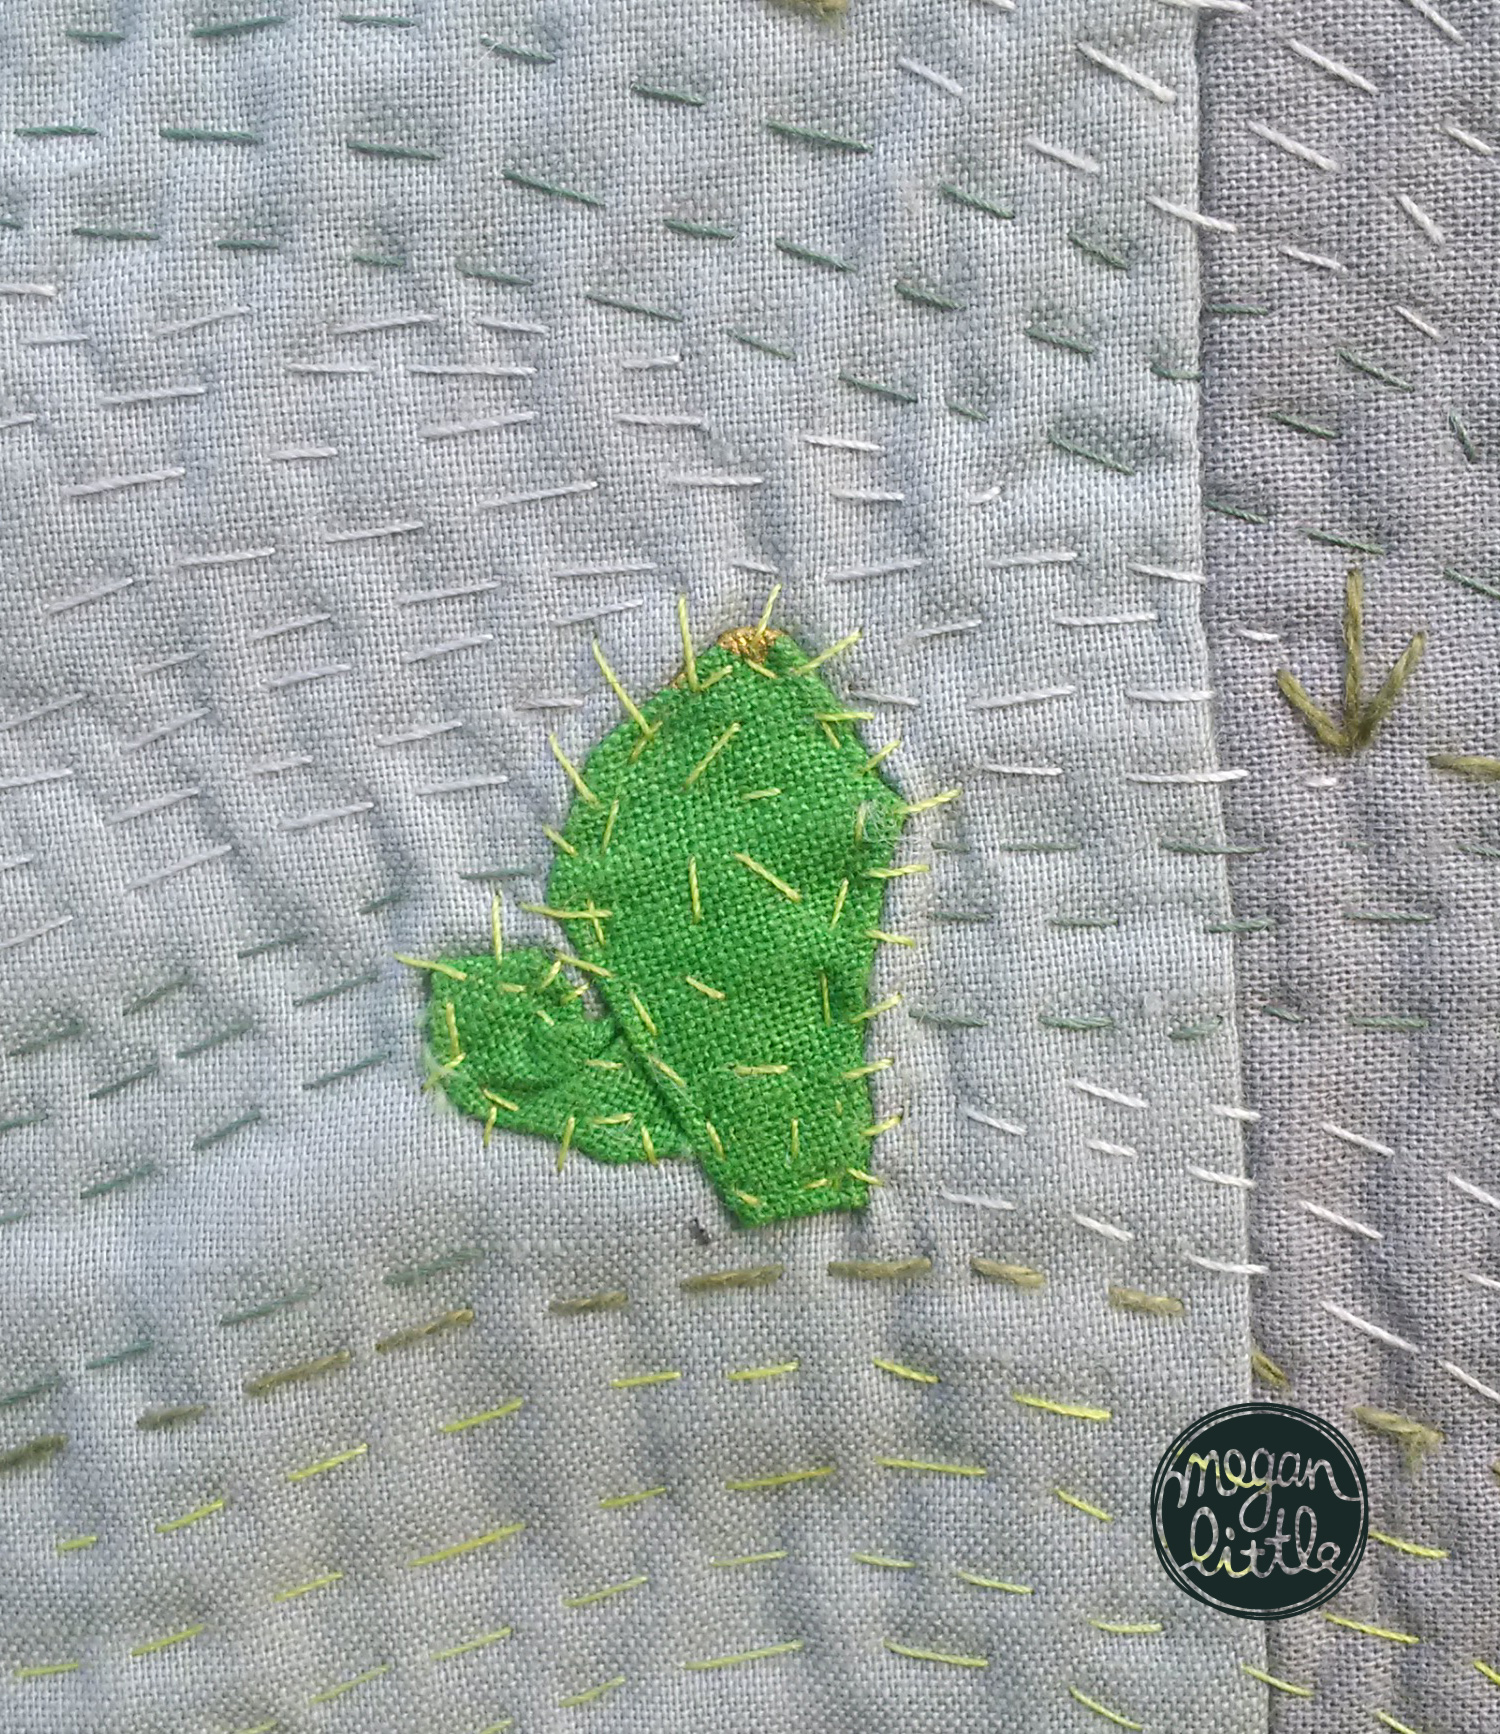 housequilt-close8_meganlittle.jpg